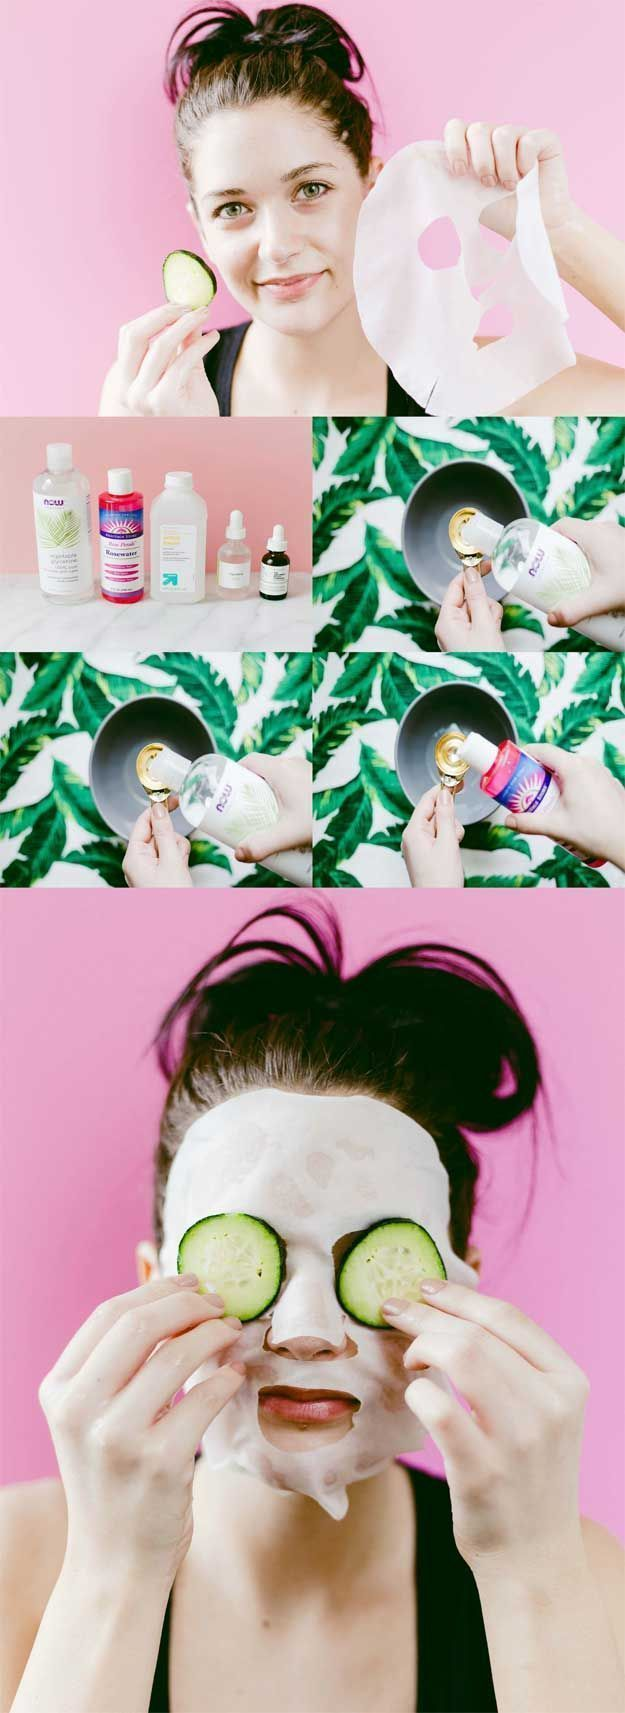 Best Beauty Tips For Your 60s - DIY Hydrating Sheet Mask - Healtyh Skin Care Tips For Older Women To Look Fabulous At Every Age. Best Skincare Routine For Your 60s And Beyond. Skin Care Advice And Beauty Routine For Older Women. Beauty Changes To Make in Your 60s And The Best Makeup For Over 60 Skin. Skin Care Products Like Moisturizer, Night Cream, And Eye Cream To Vanish Wrinkles And Look Younger. The Best Beauty Tips For Older Women To Help With Aging Gracefully, Dealing with Gray Hair…